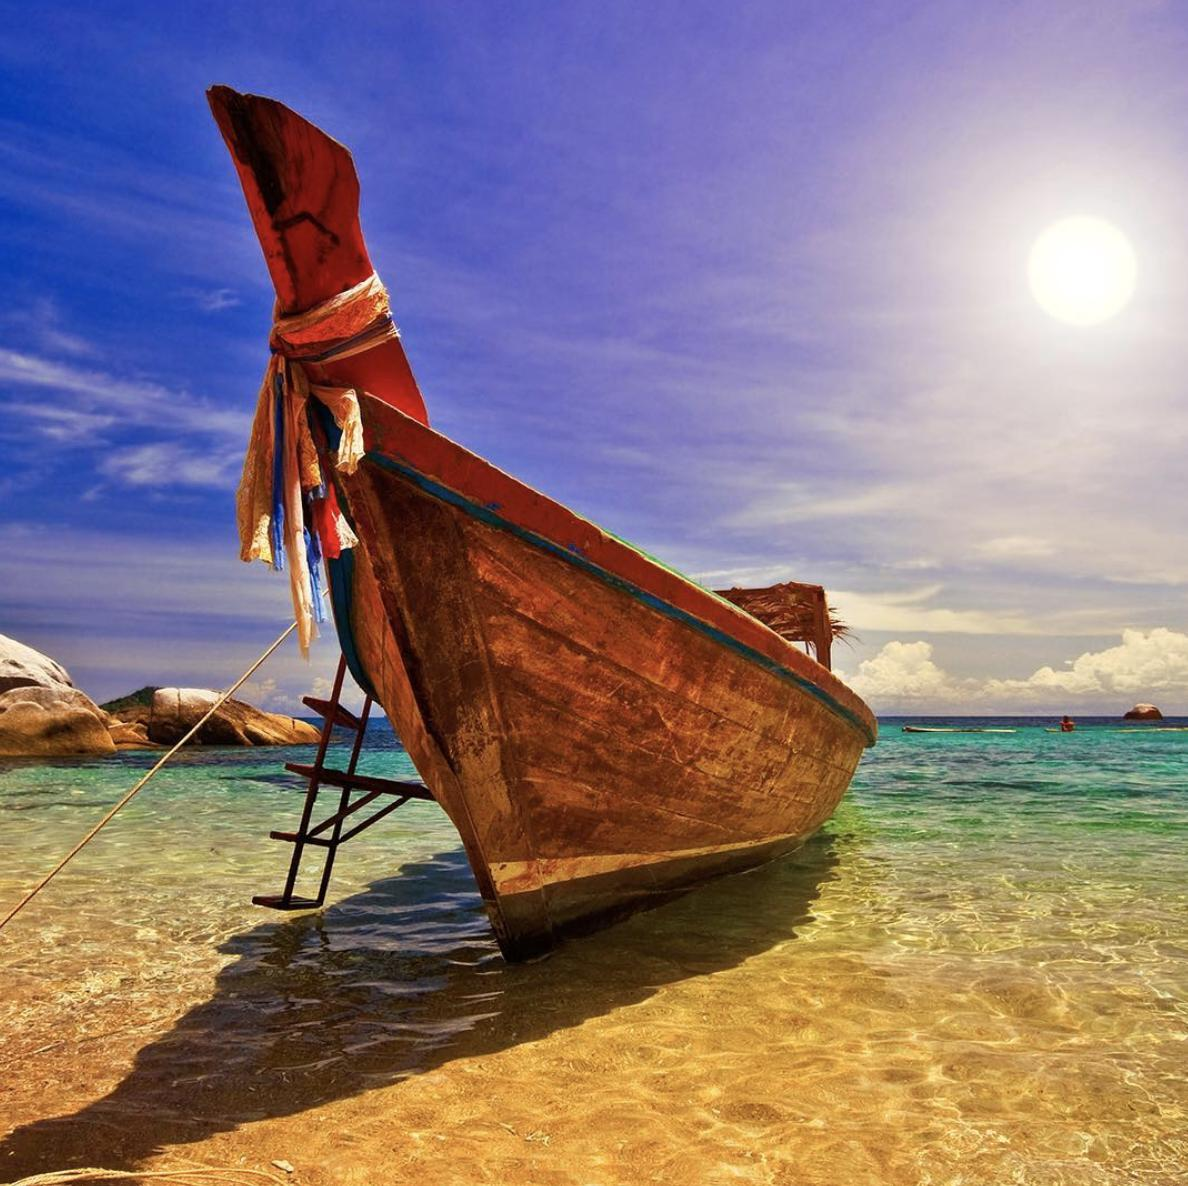 Let's live your simple life! This photo of a traditional long-tail boat in Phuket reminds me of the fabulous islands trip to the south of Thailand. Will definitely make a return.  #AmazingThailand #OpenToTheNewShades #ReviewThailand #LongTailBoat  #Phuket  #IslandThailand<br>http://pic.twitter.com/Y6CYRVofoC